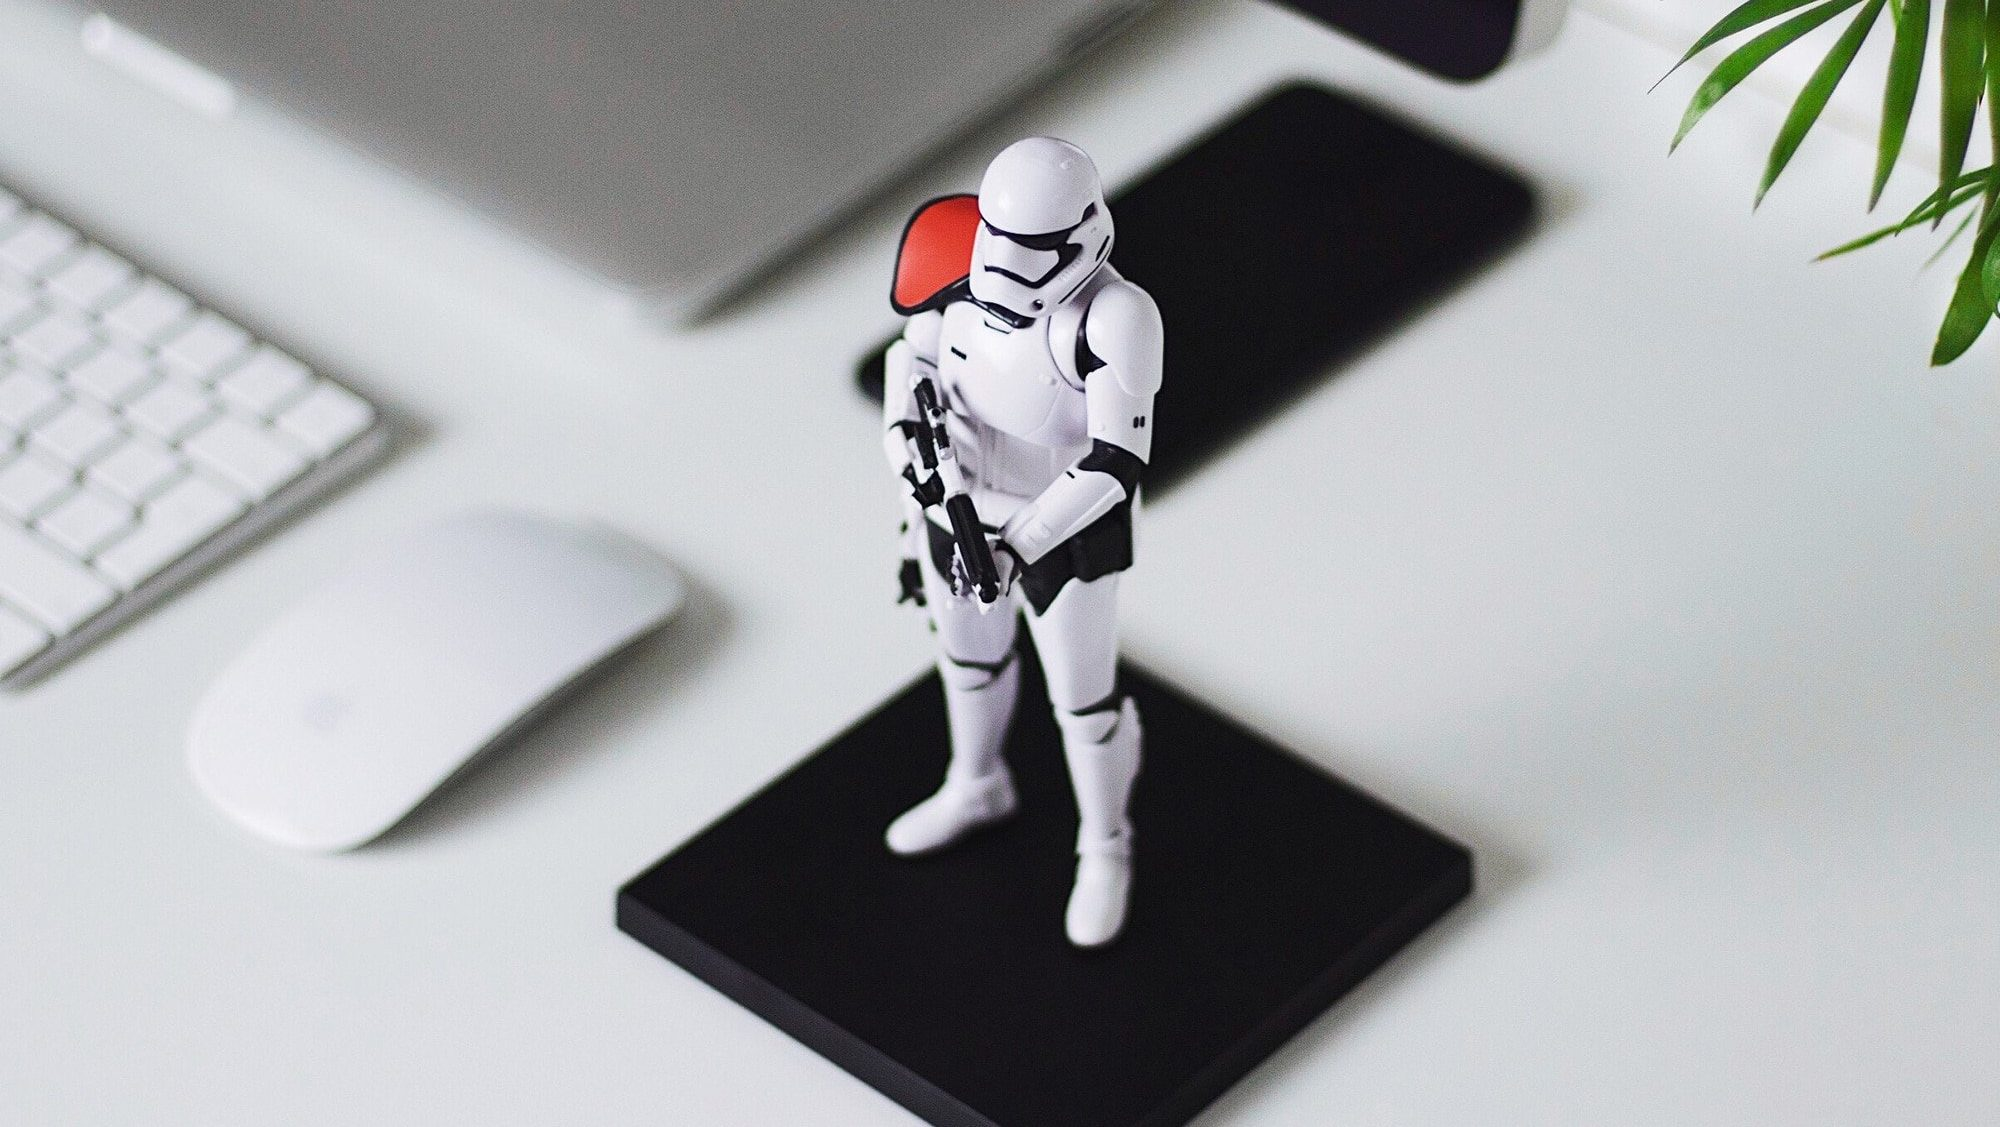 Warning signs a client may not pay featured image stormtrooper miniature on desk